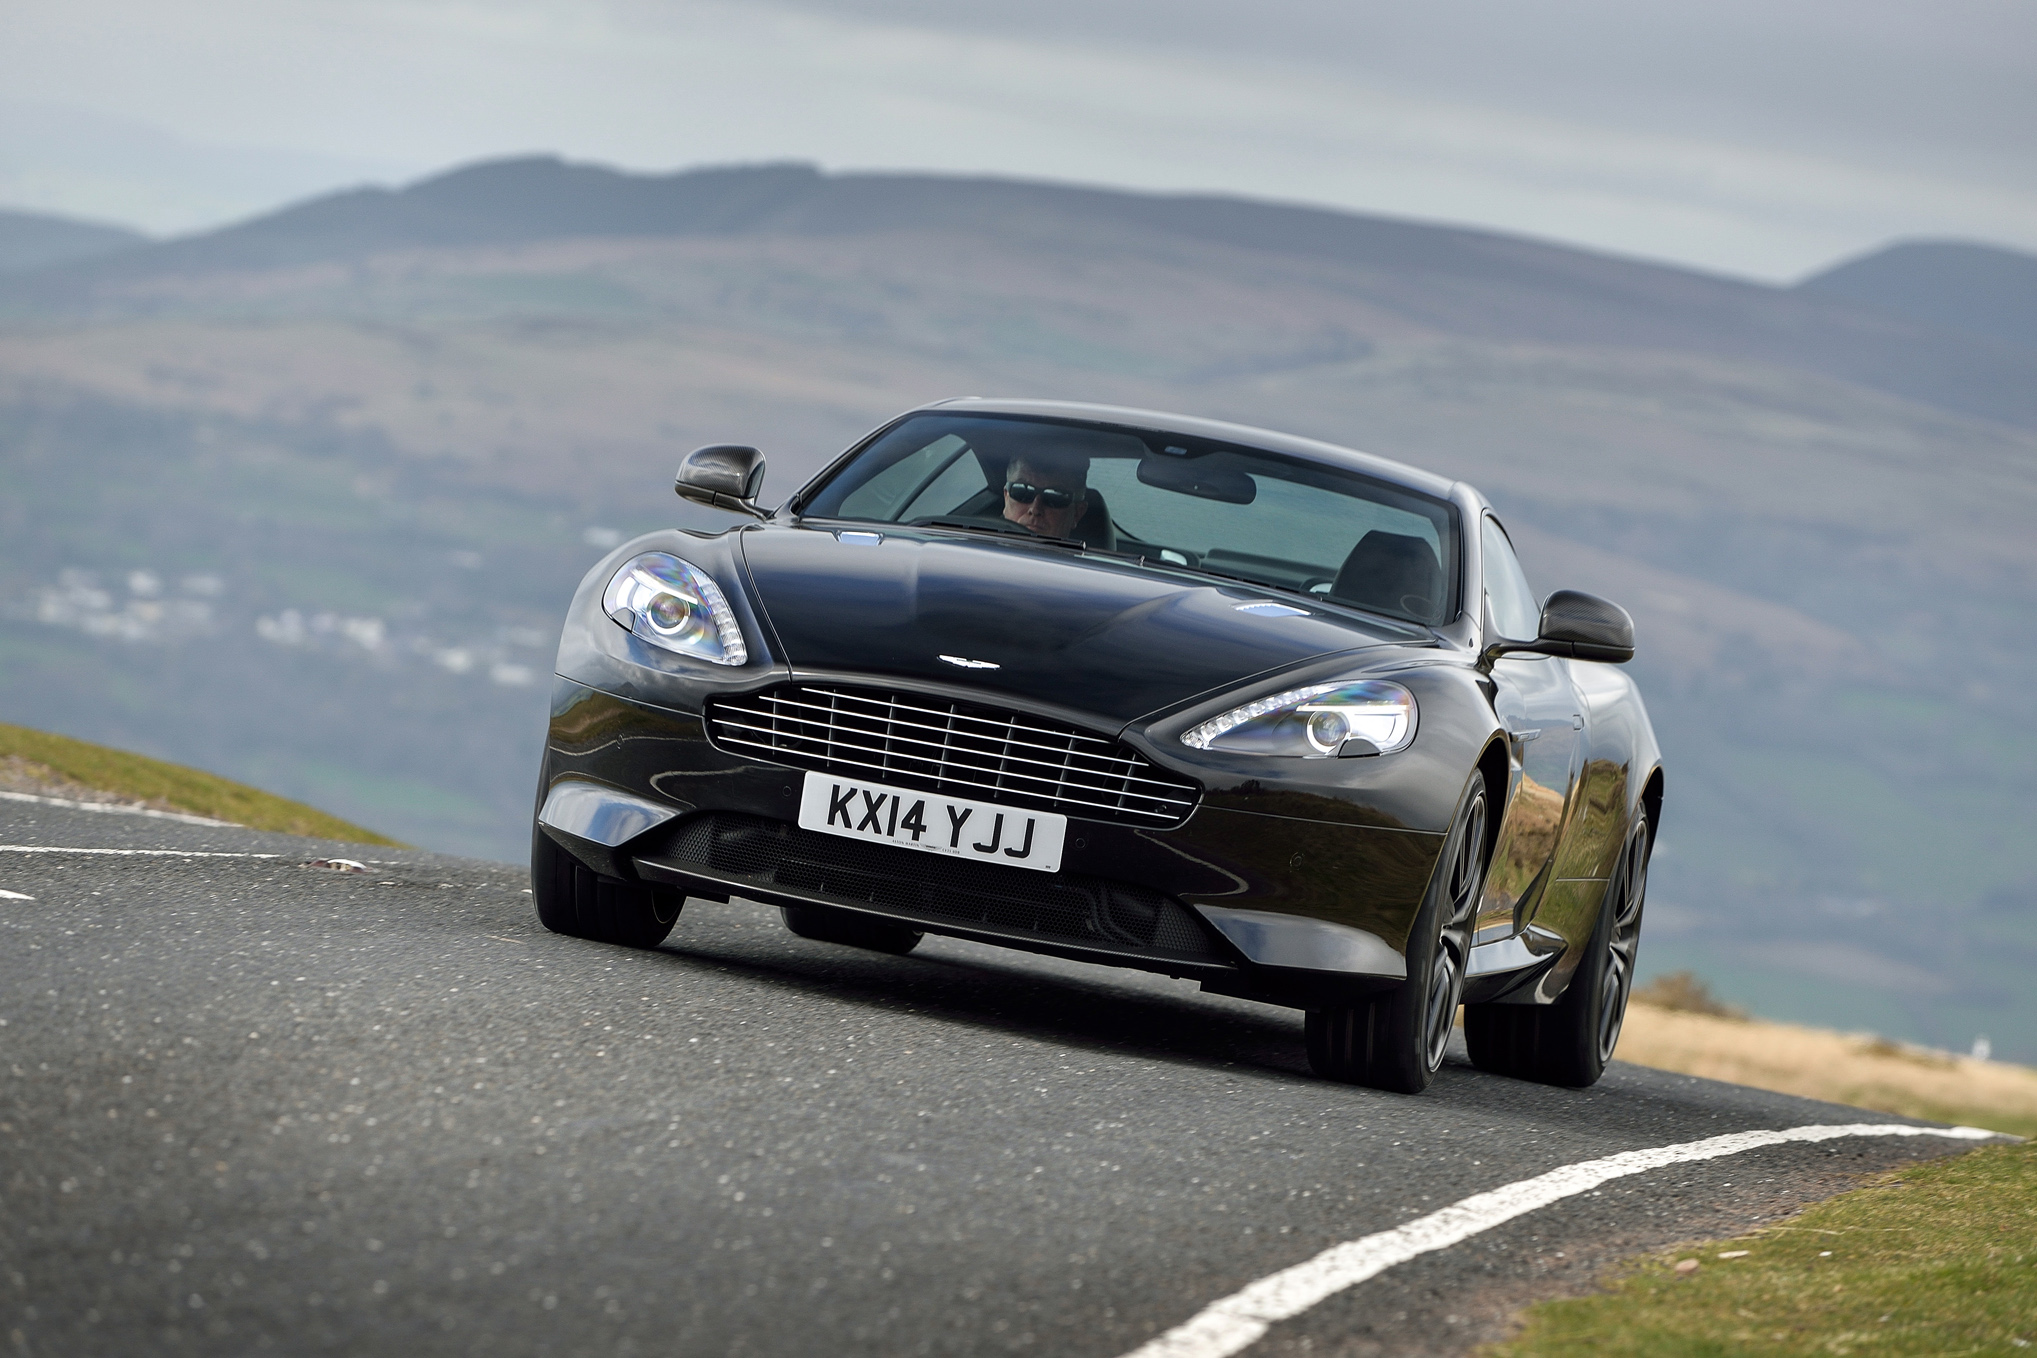 Aston Martin Db9 Coupe Touchtronic 2015 International Price Overview